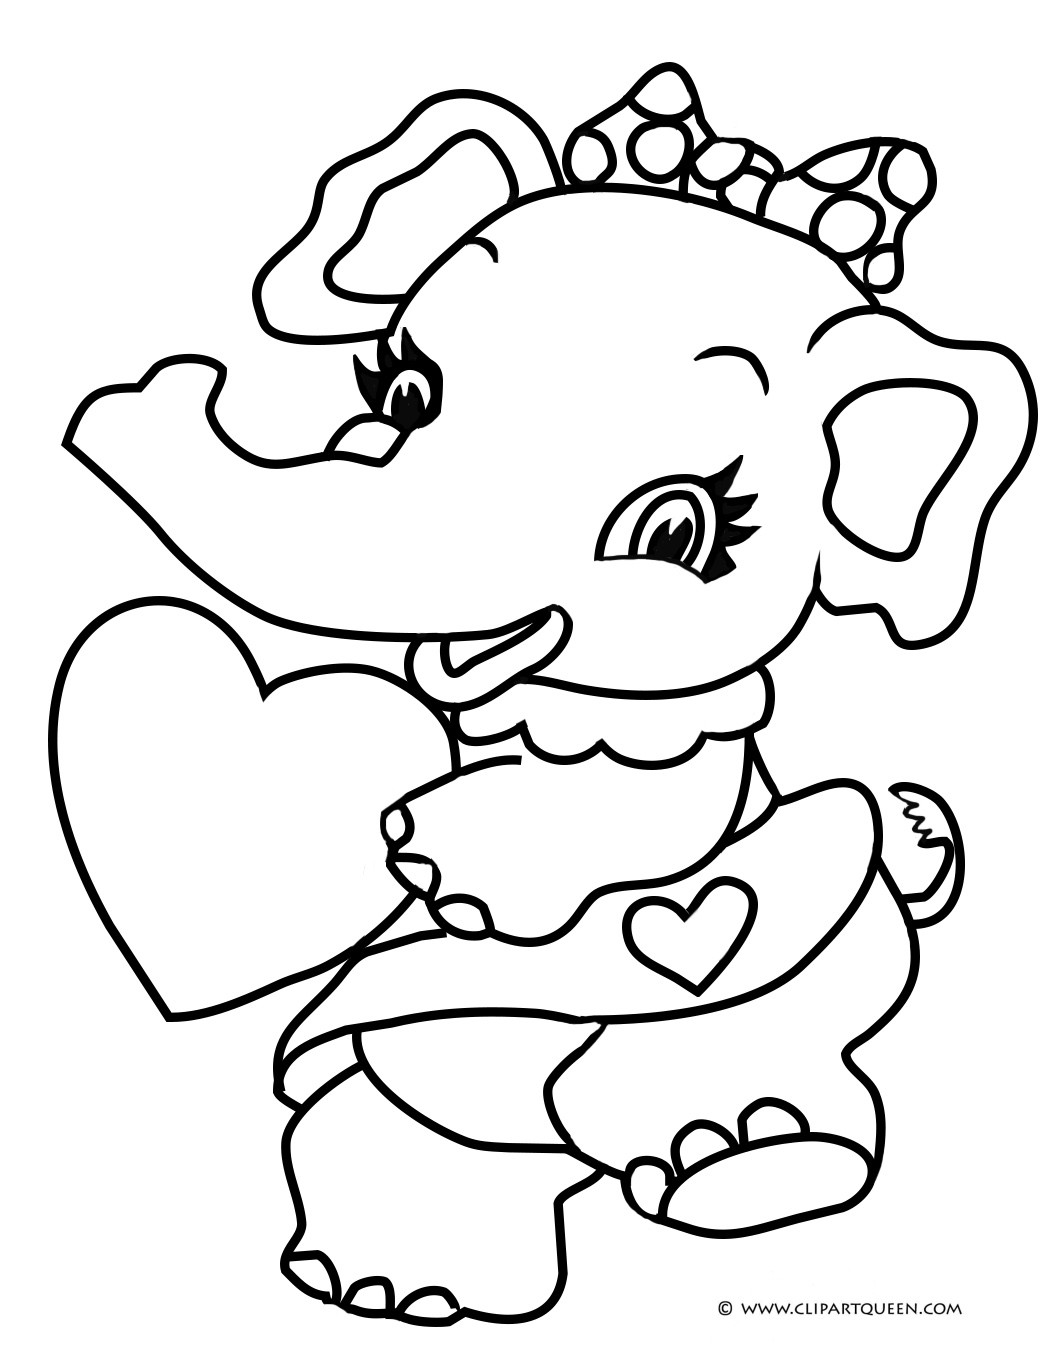 Best ideas about Valentines Coloring Sheets For Girls . Save or Pin 13 Valentine s Day coloring pages Now.